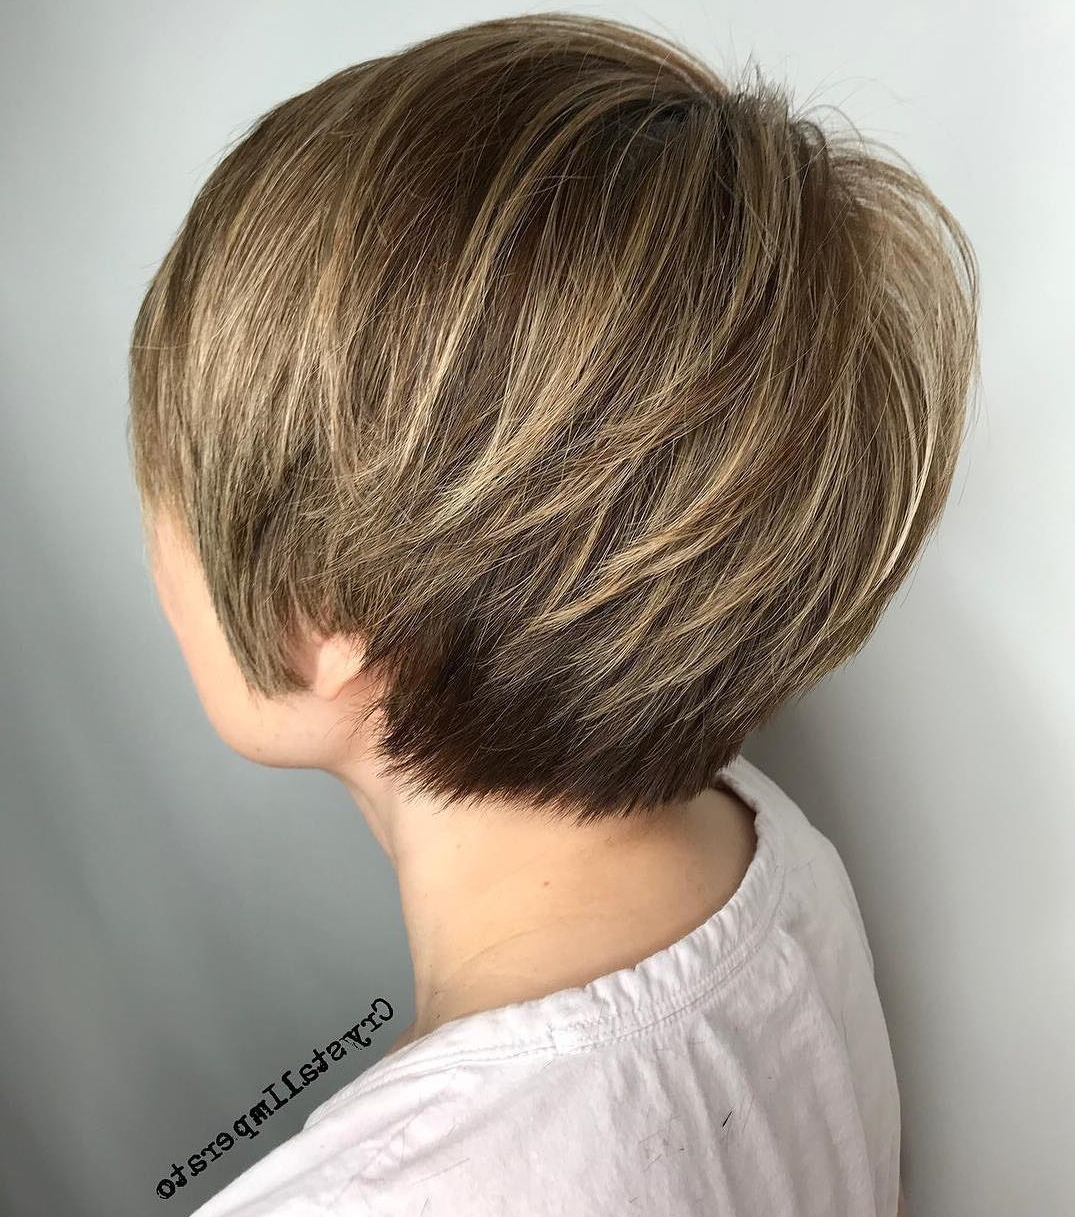 50 Hottest Pixie Cut Hairstyles In 2019 With Regard To Curly Pixie Haircuts With Highlights (View 14 of 20)